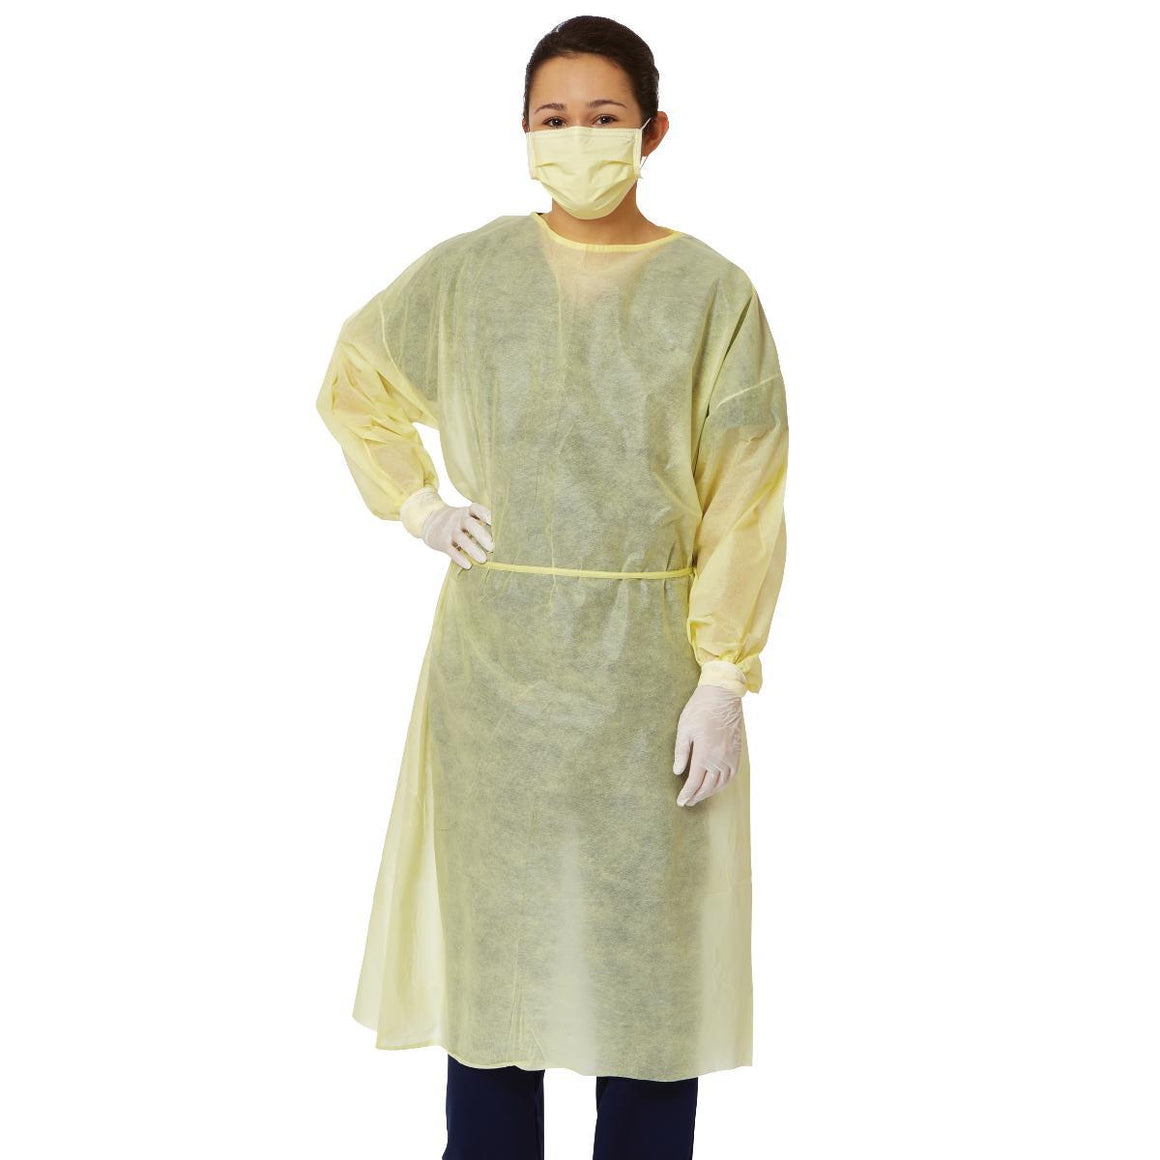 Level 1 Disposable Isolation Gown Assorted Colors (Blue, Yellow, Green, White) 100/Case